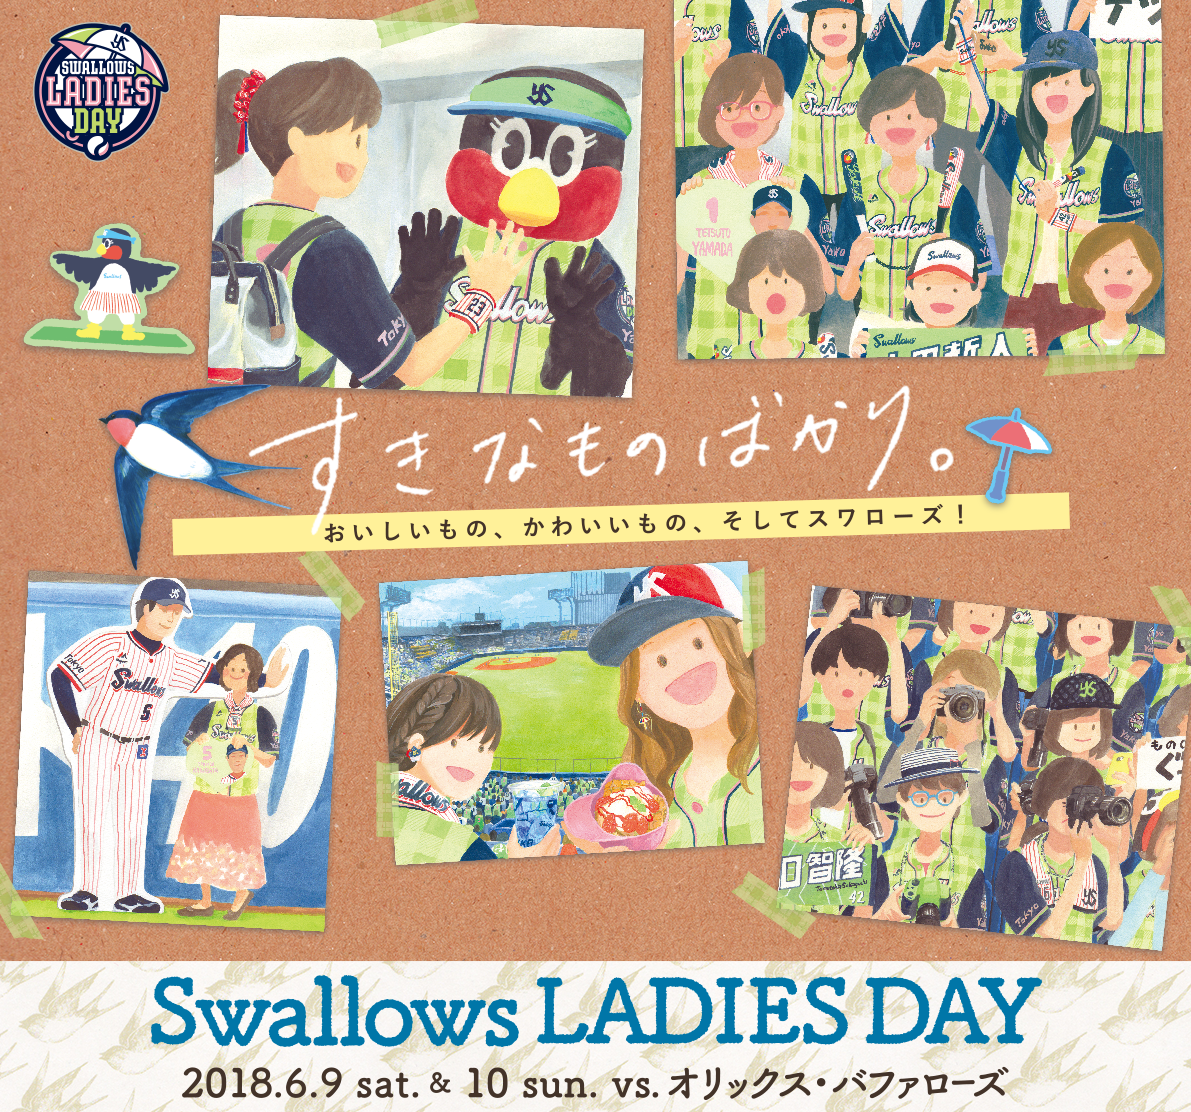 Swallows LADIES DAY 2017